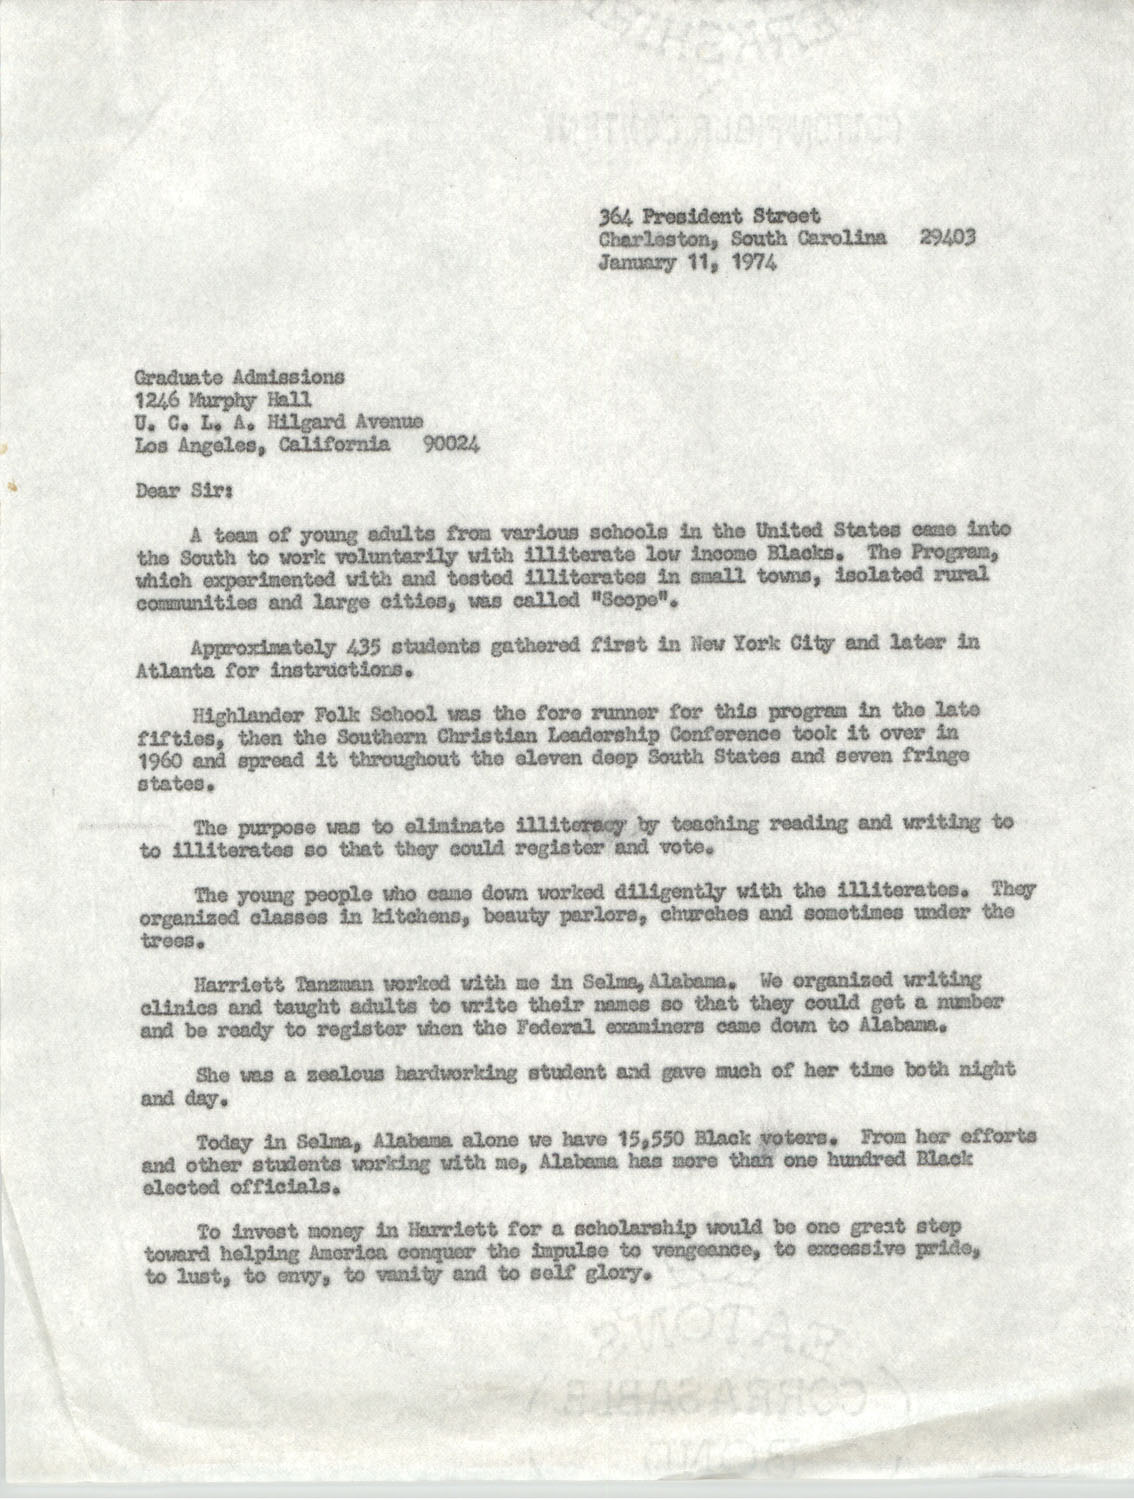 Letter from Septima P. Clark to Graduate Admissions at U.C.L.A., January 11, 1974